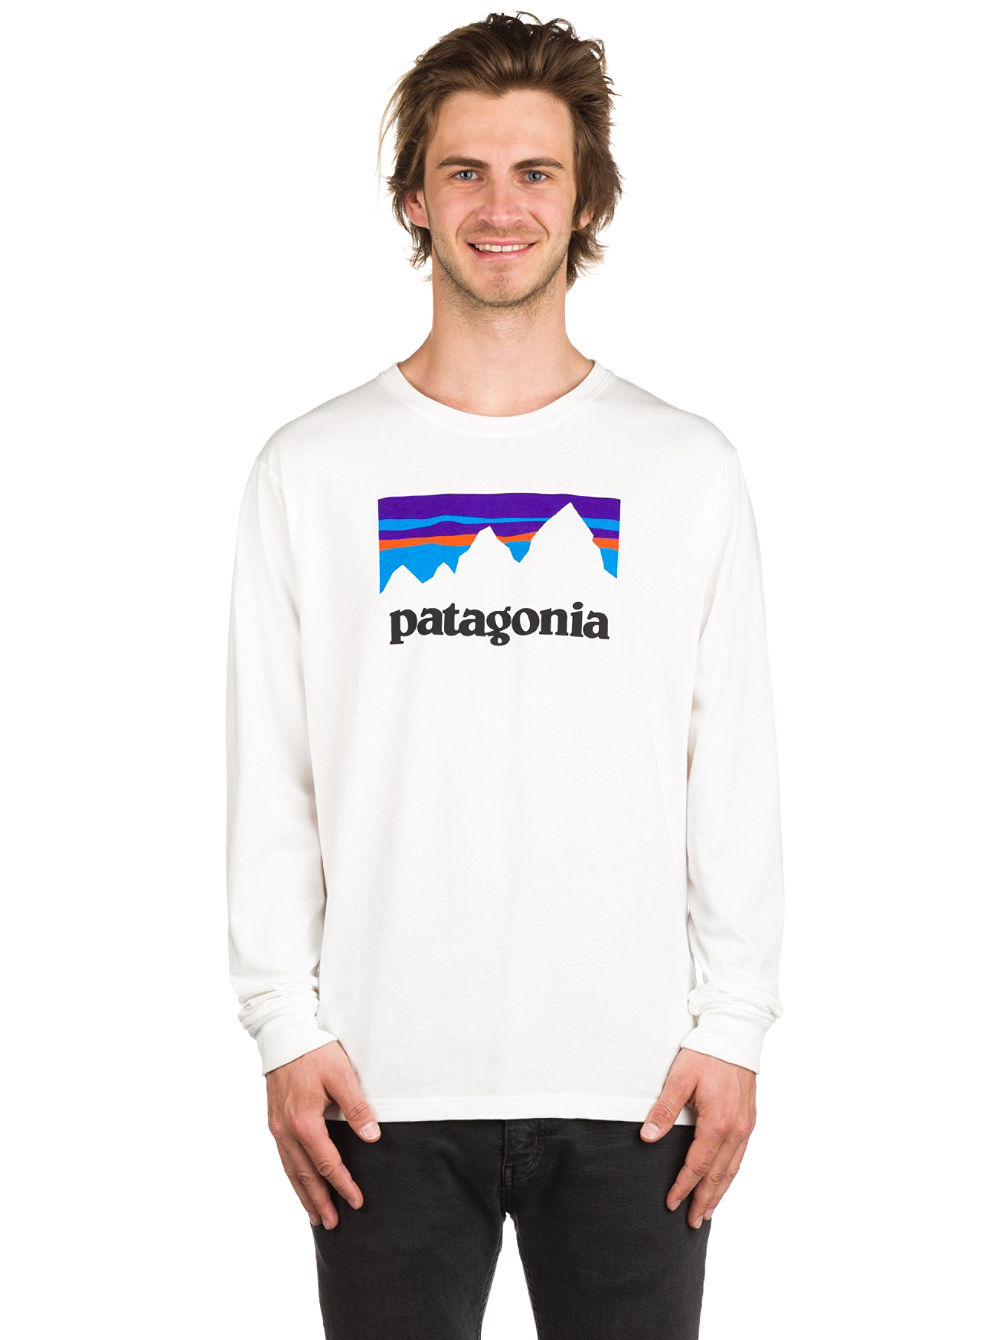 patagonia-shop-sticker-cotton-t-shirt-ls